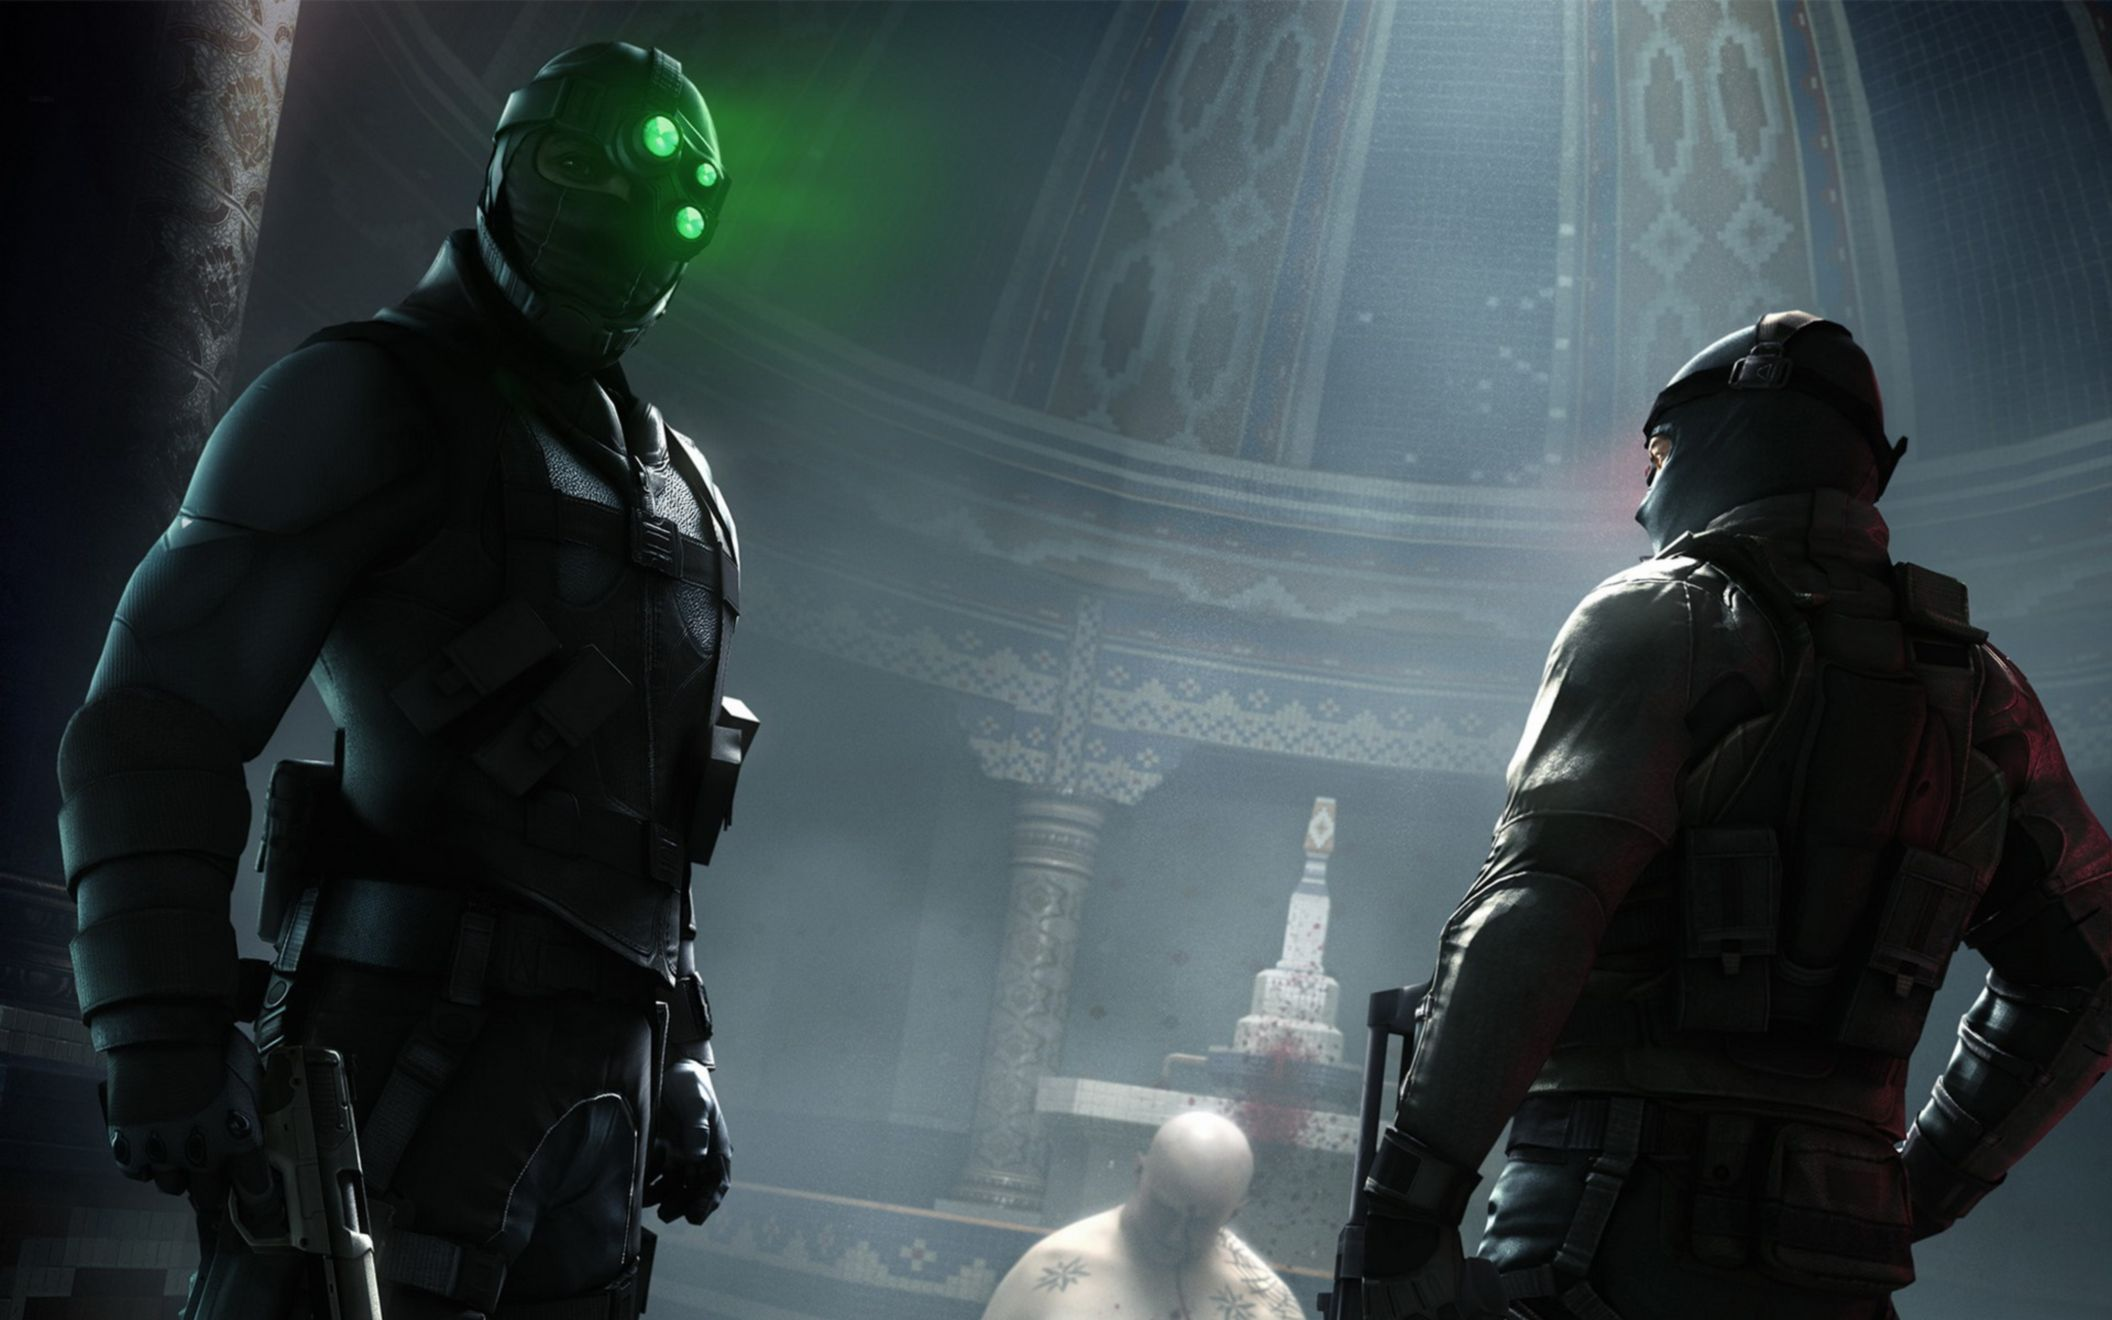 Download free HD Splinter Cell Conviction 2010 Game Wide Wallpaper, image